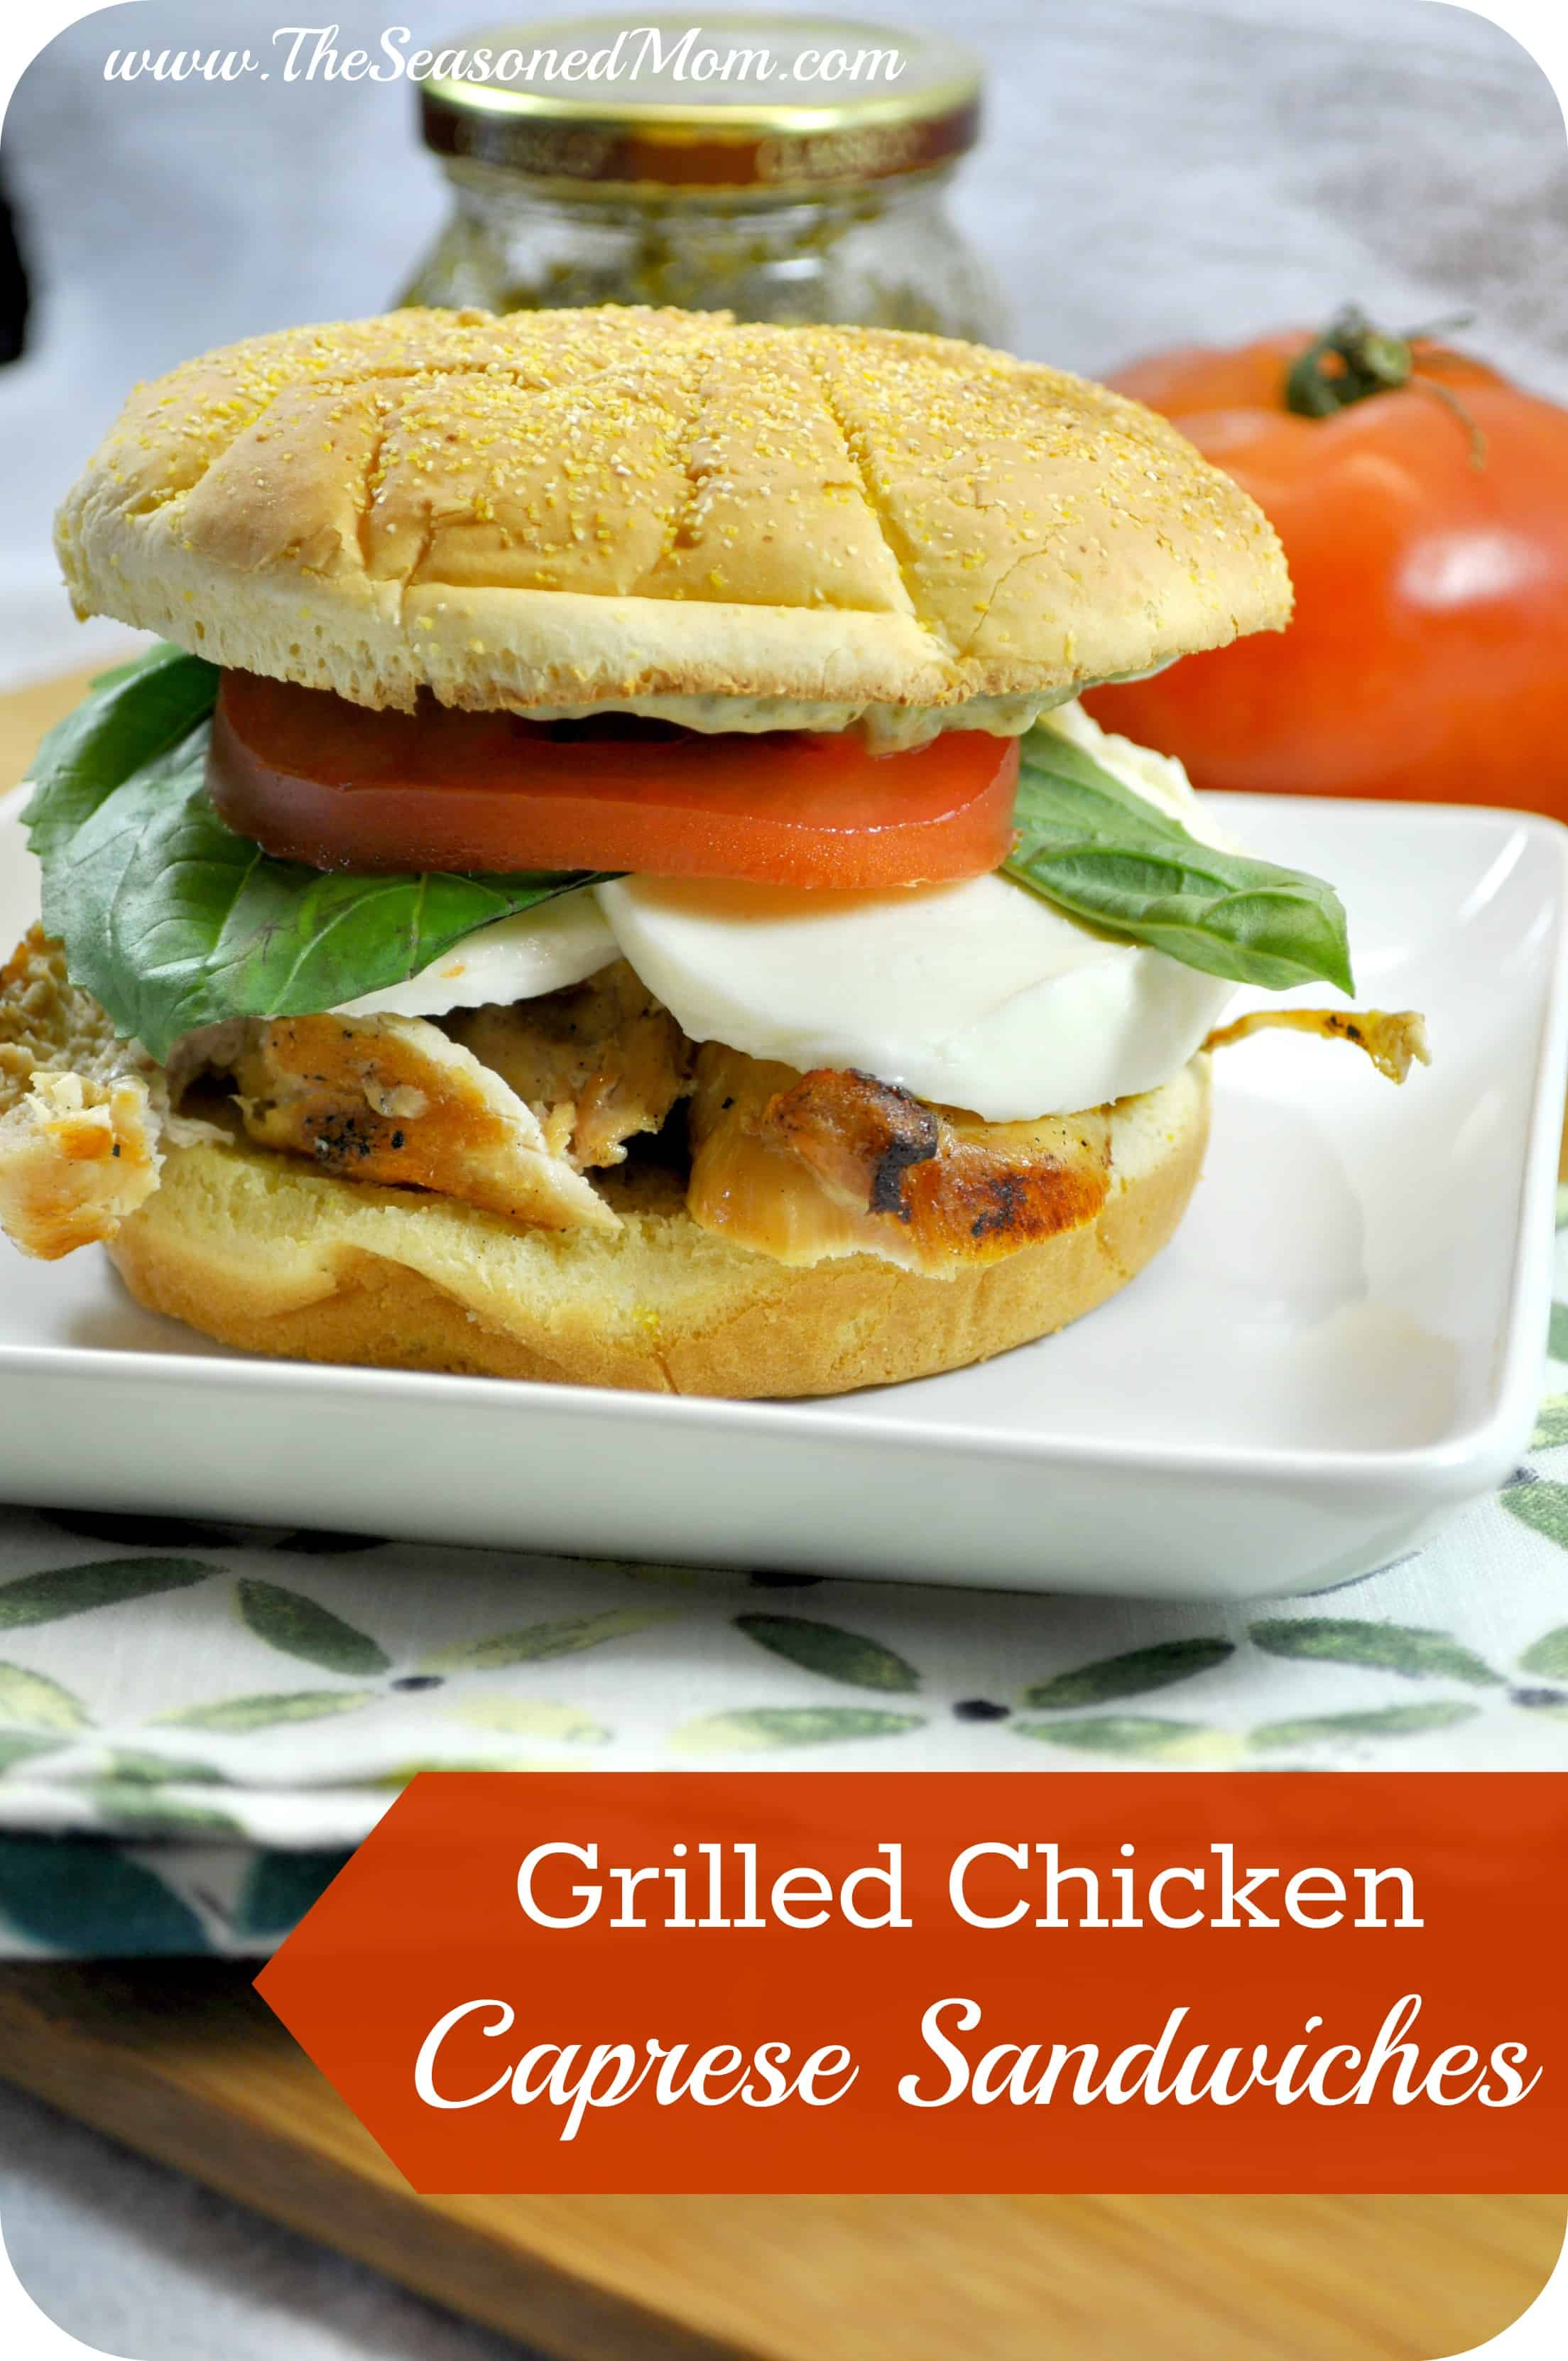 Grilled Chicken Caprese Sandwiches - The Seasoned Mom